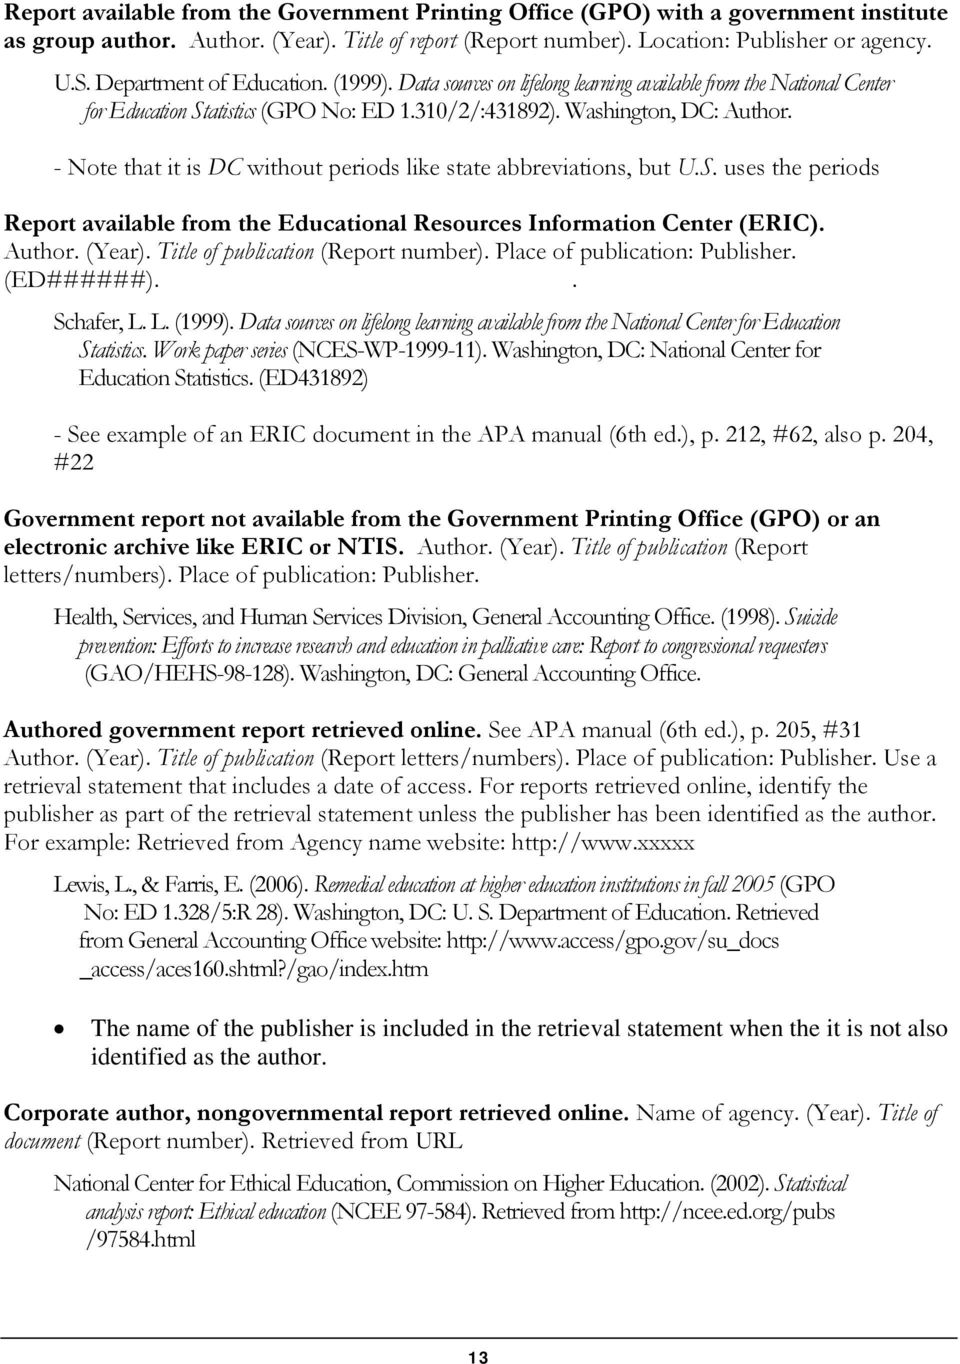 download apa manual 6th edition reference list